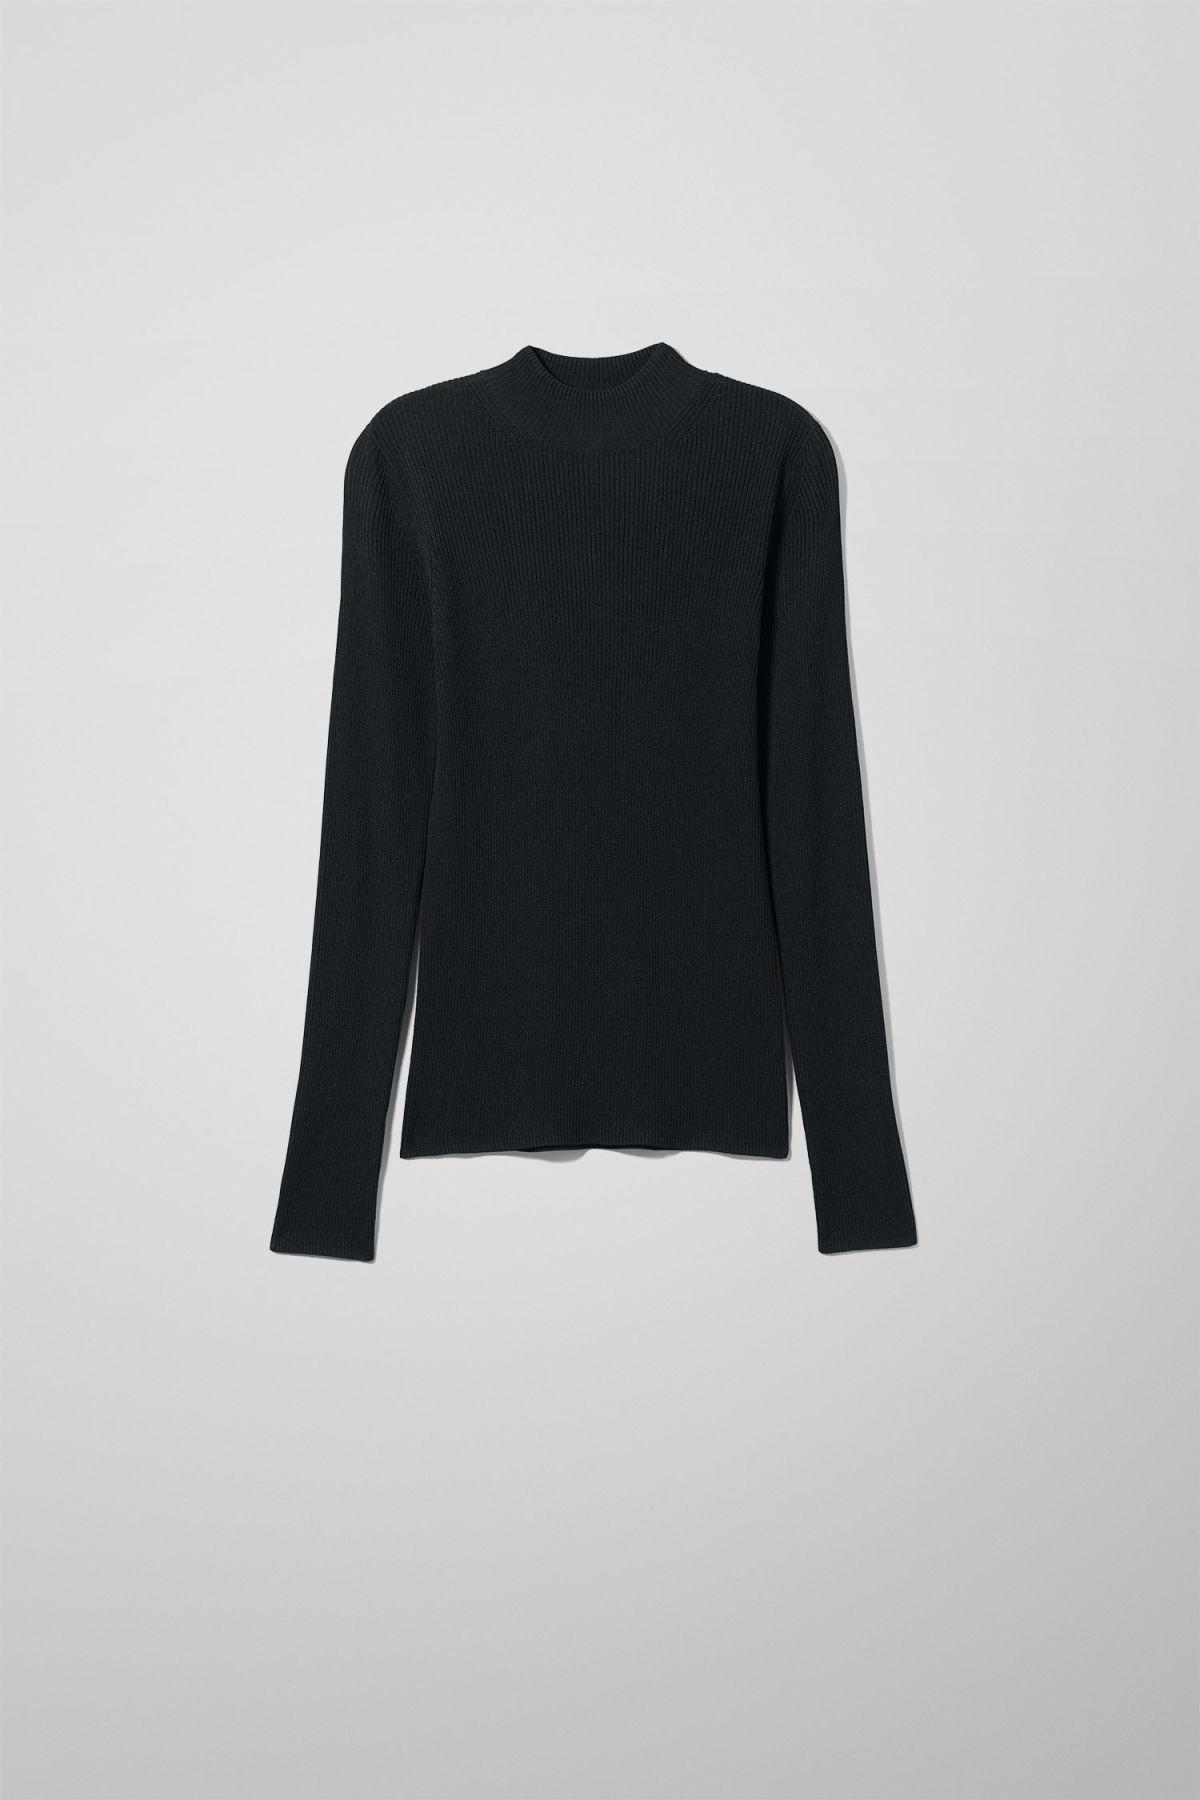 Front image of Weekday haze knit top in black